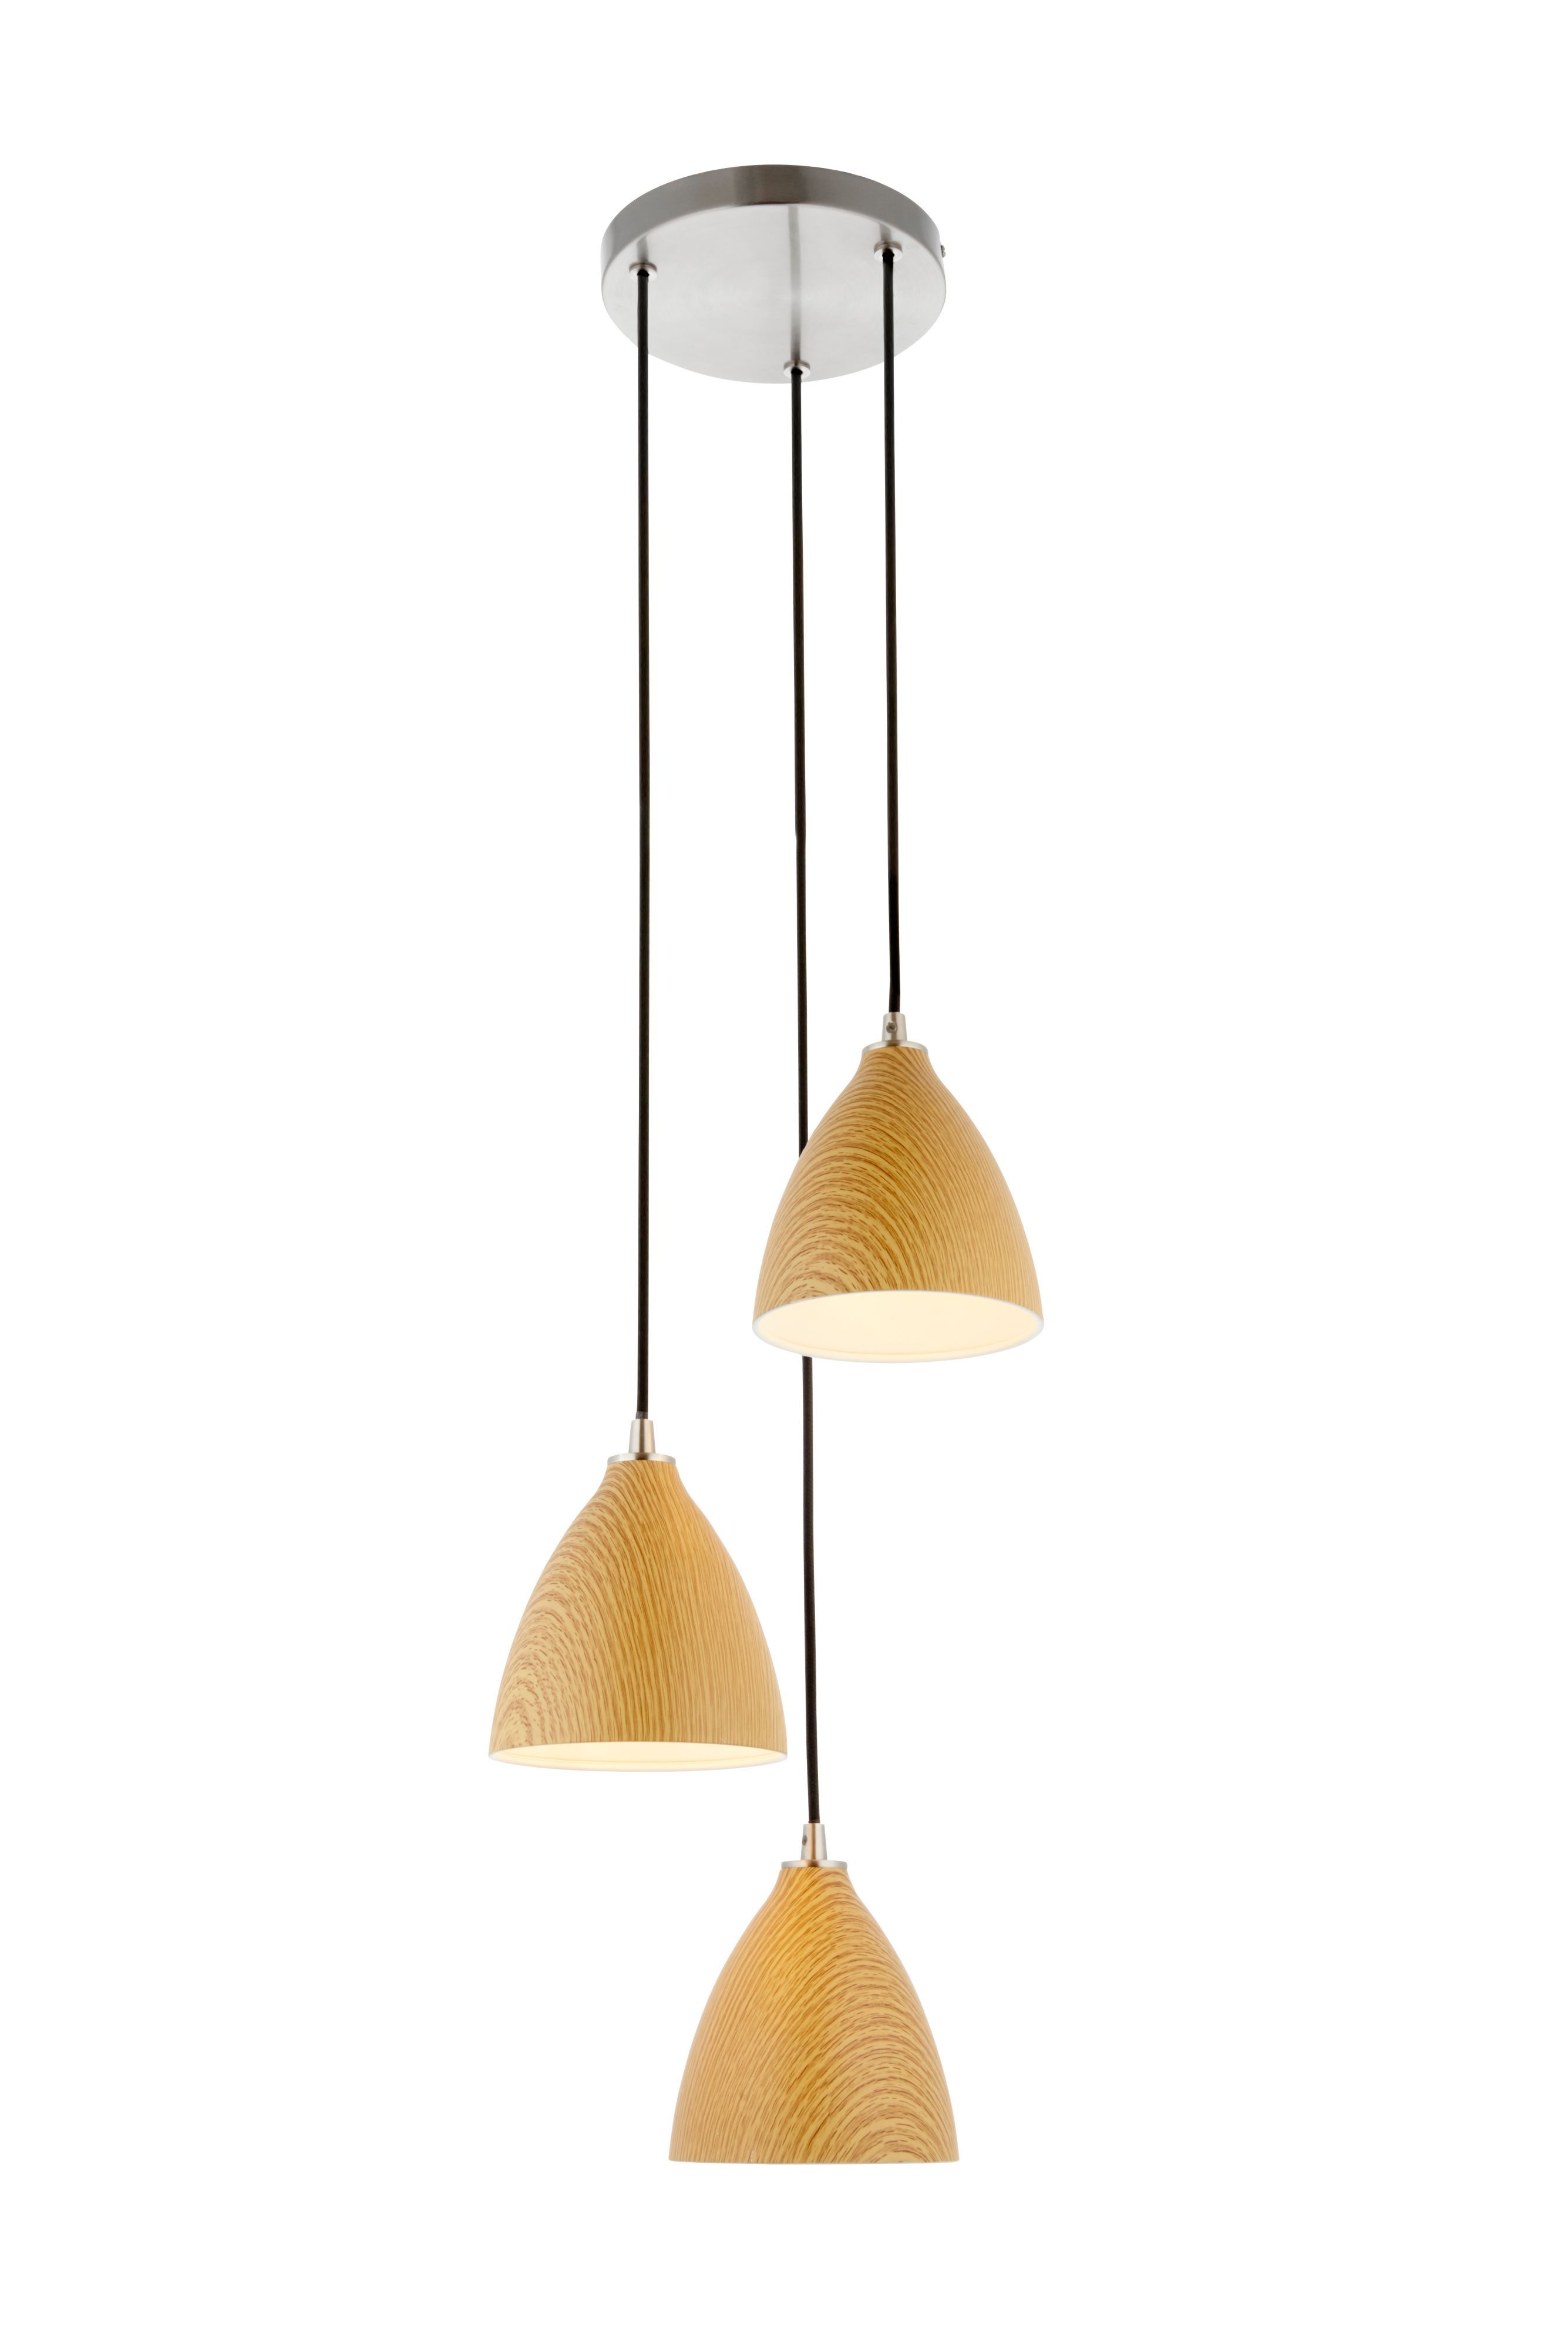 Elway Wood Effect & Brushed Chrome Effect 3 Lamp Pendant Ceiling ...